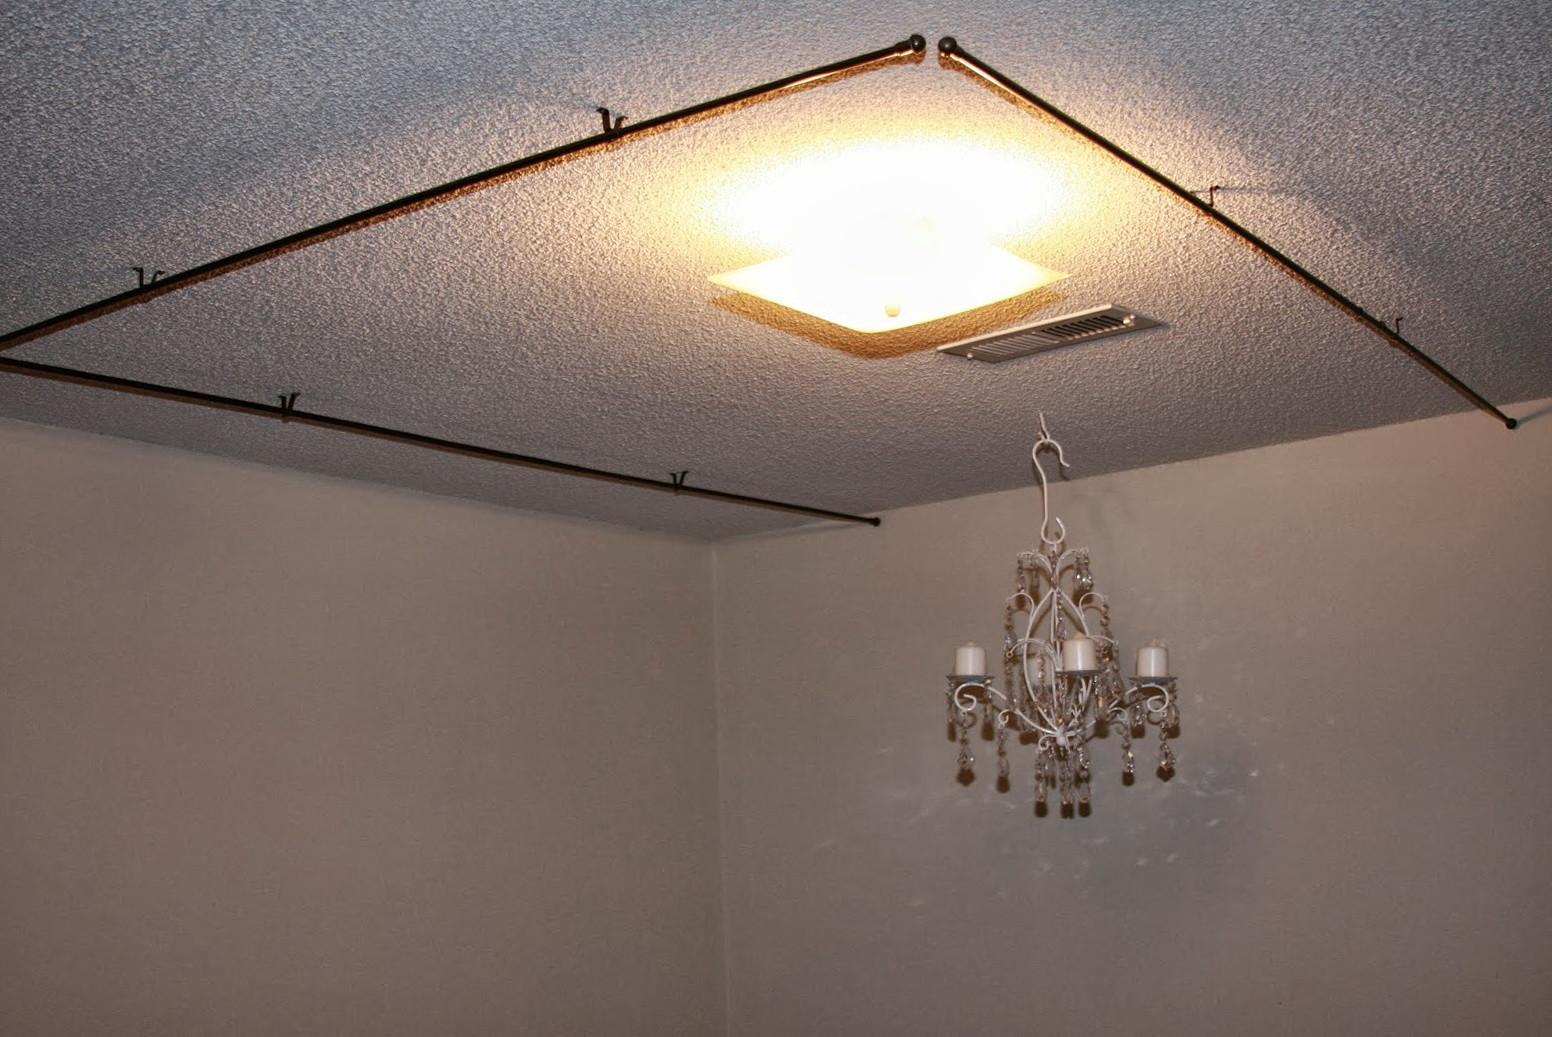 Ceiling Mount Curtain Rods Canopy Bed Home Design Ideas